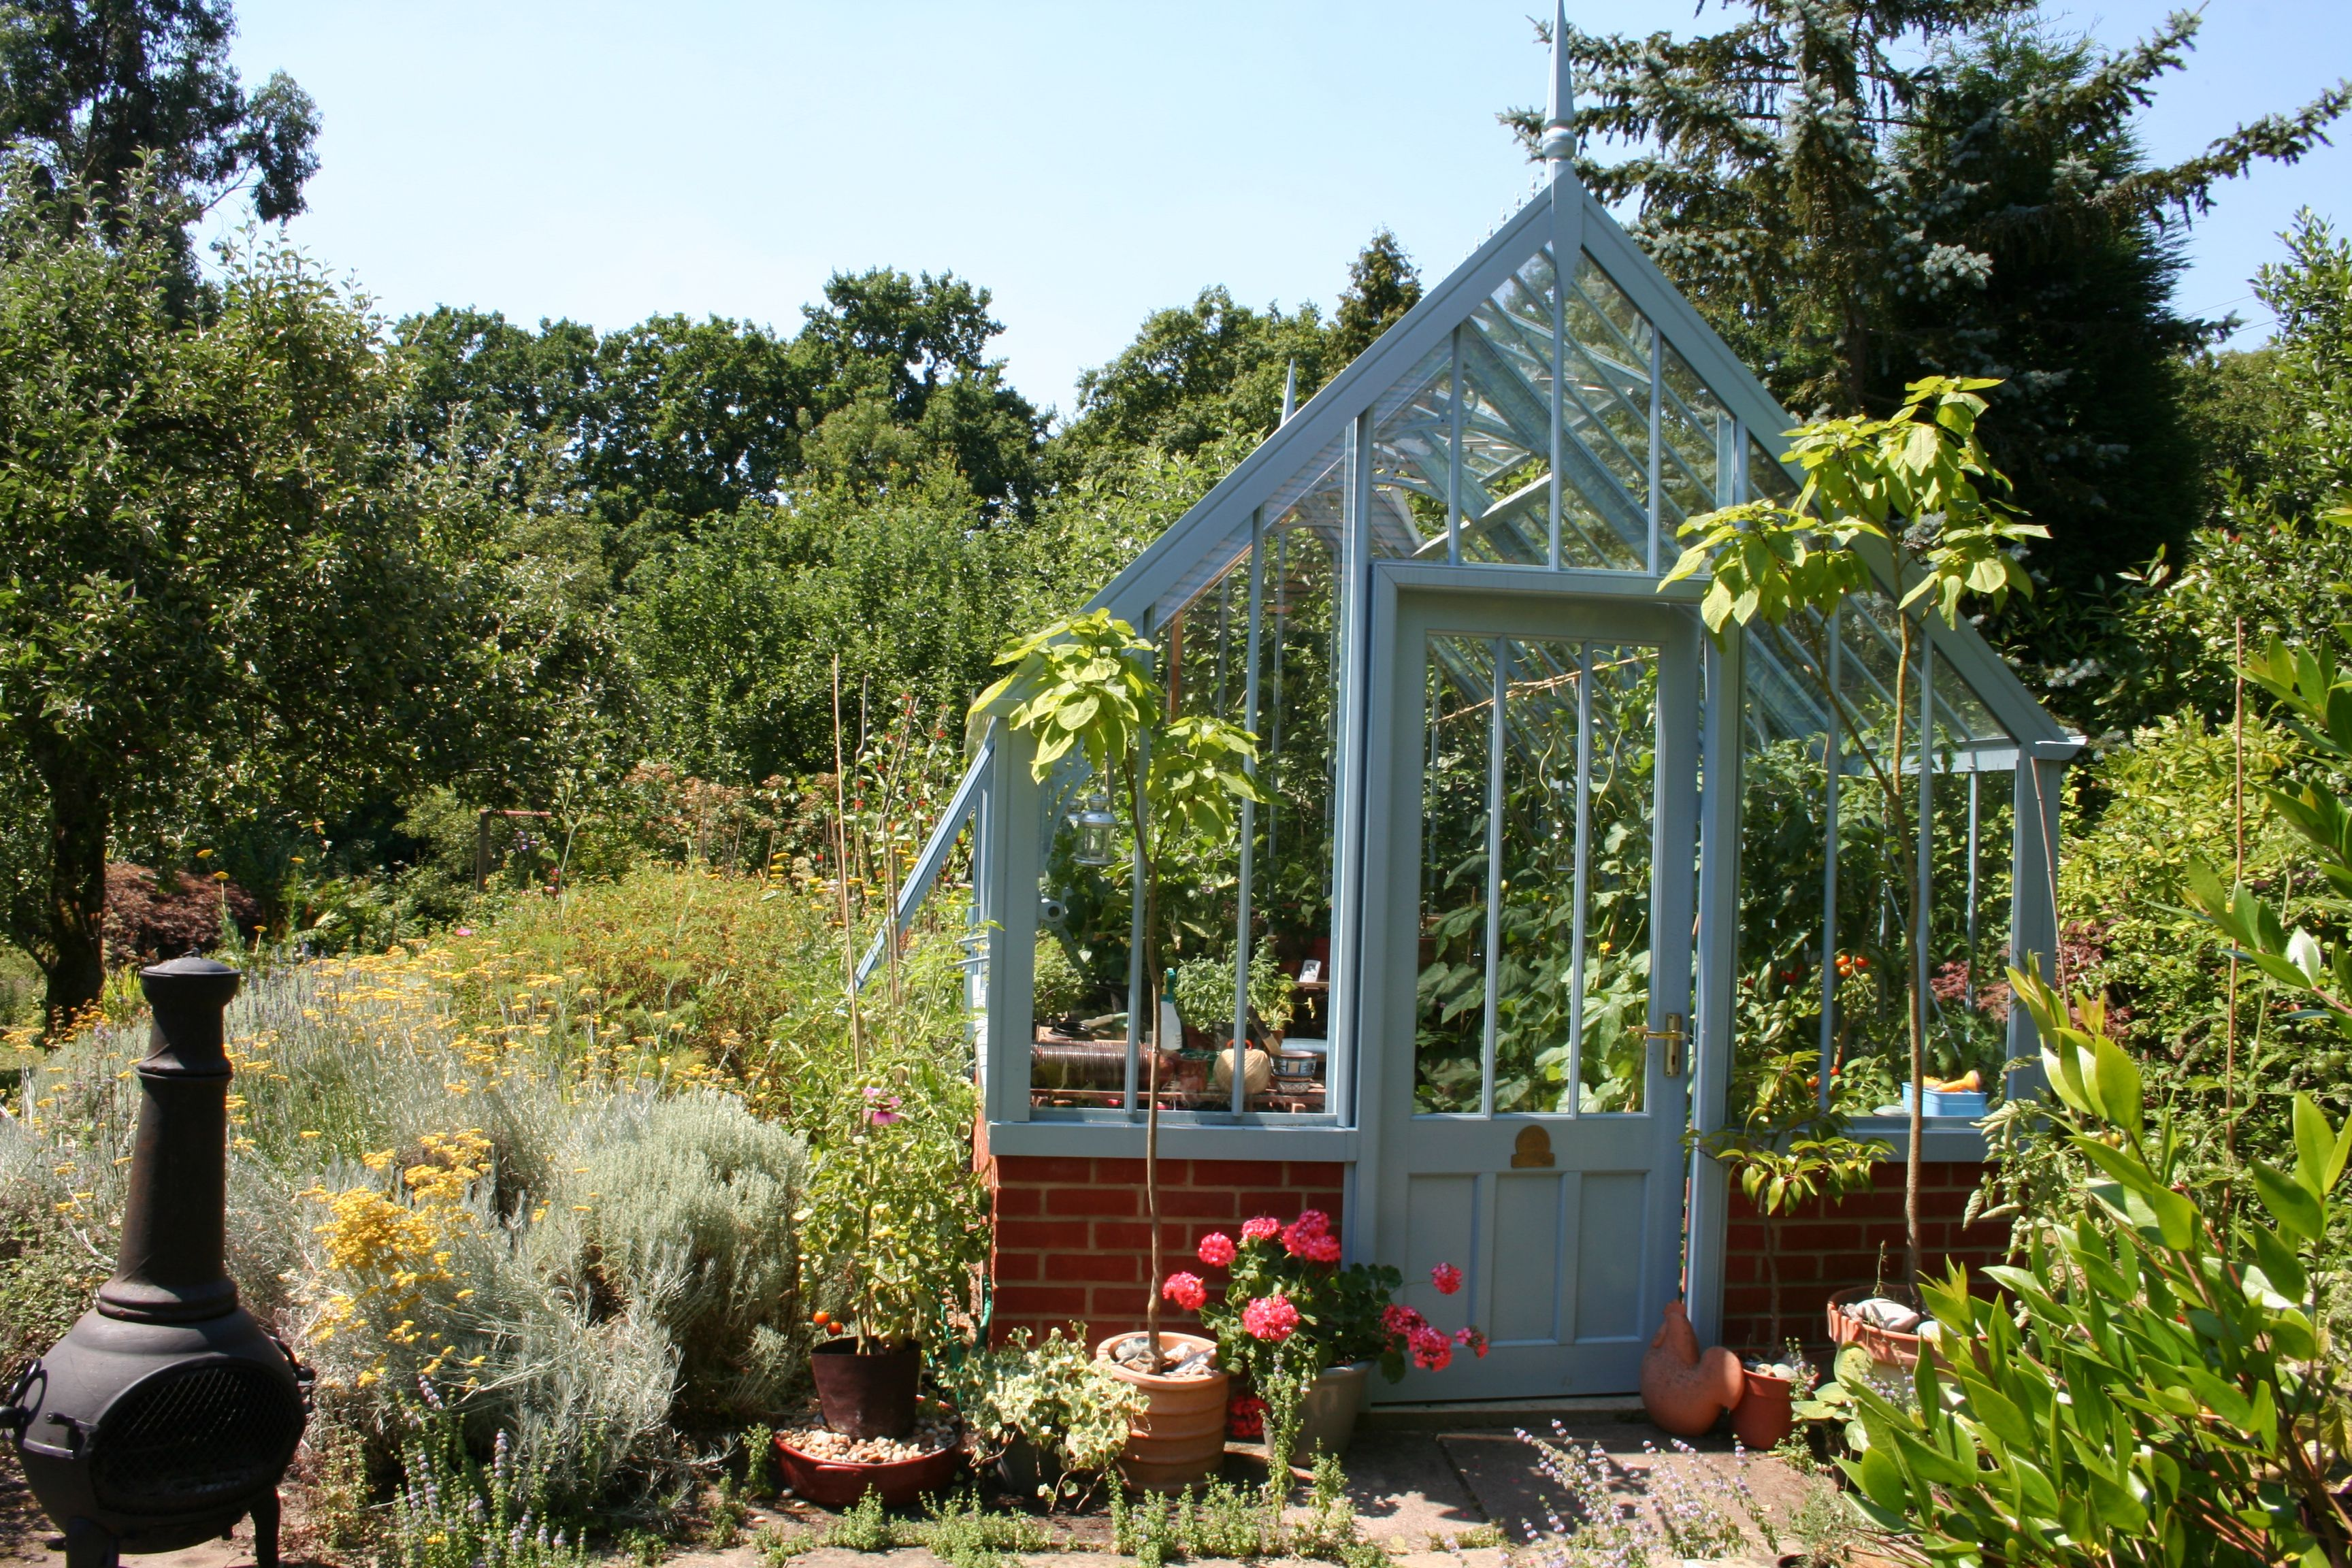 Blue greenhouse. Not for everyone, but looks bright all year round. Mediterranean feel to the garden too. www.alitex.co.uk